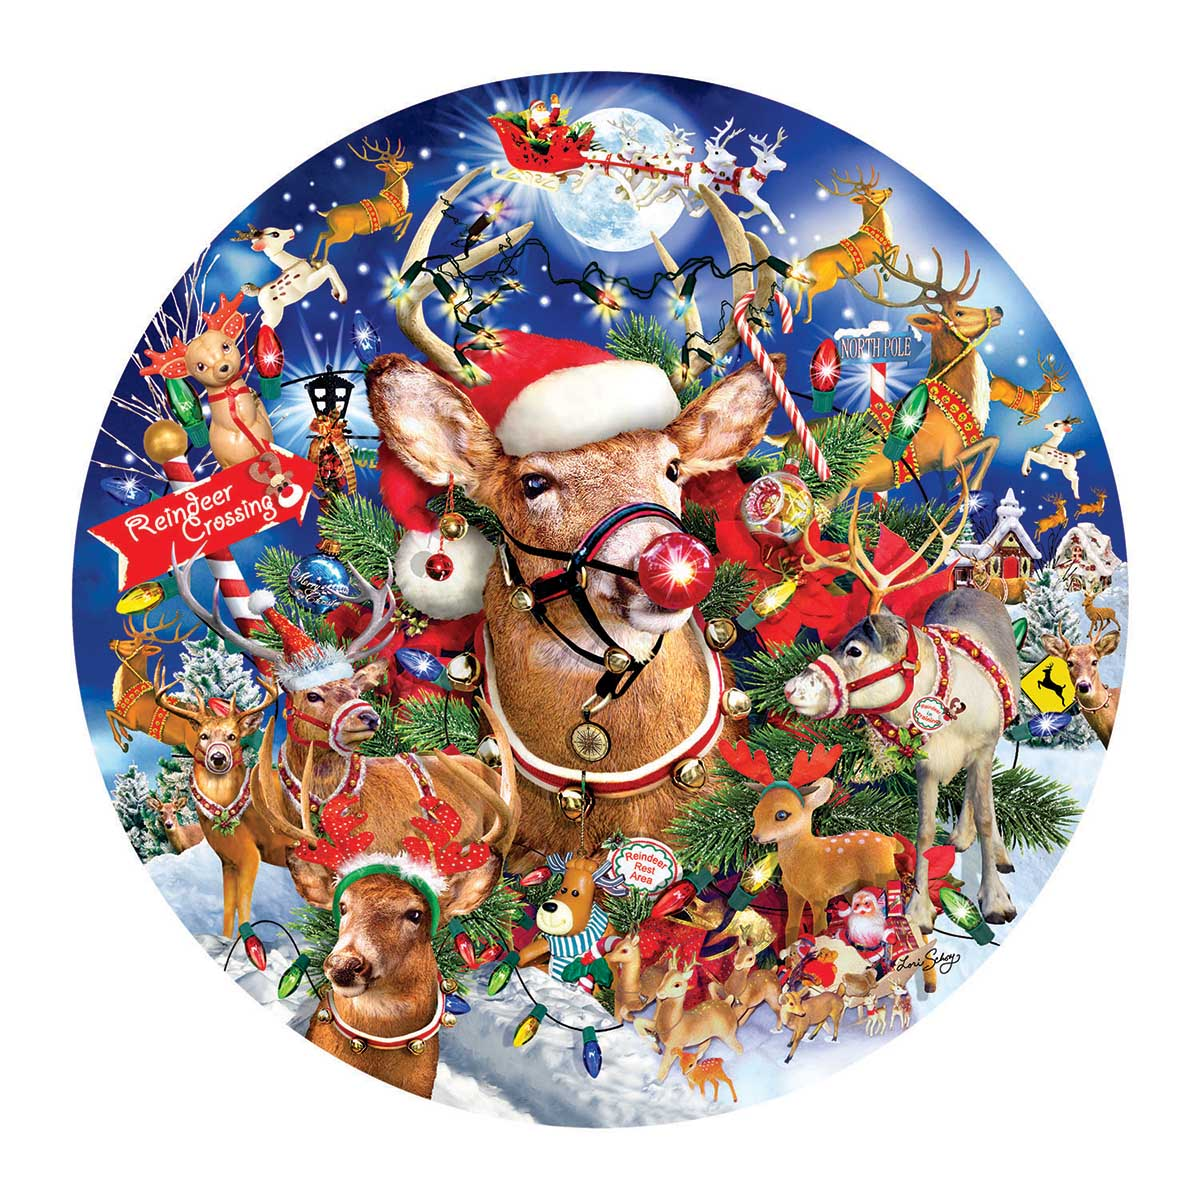 Reindeer Madness Christmas Jigsaw Puzzle